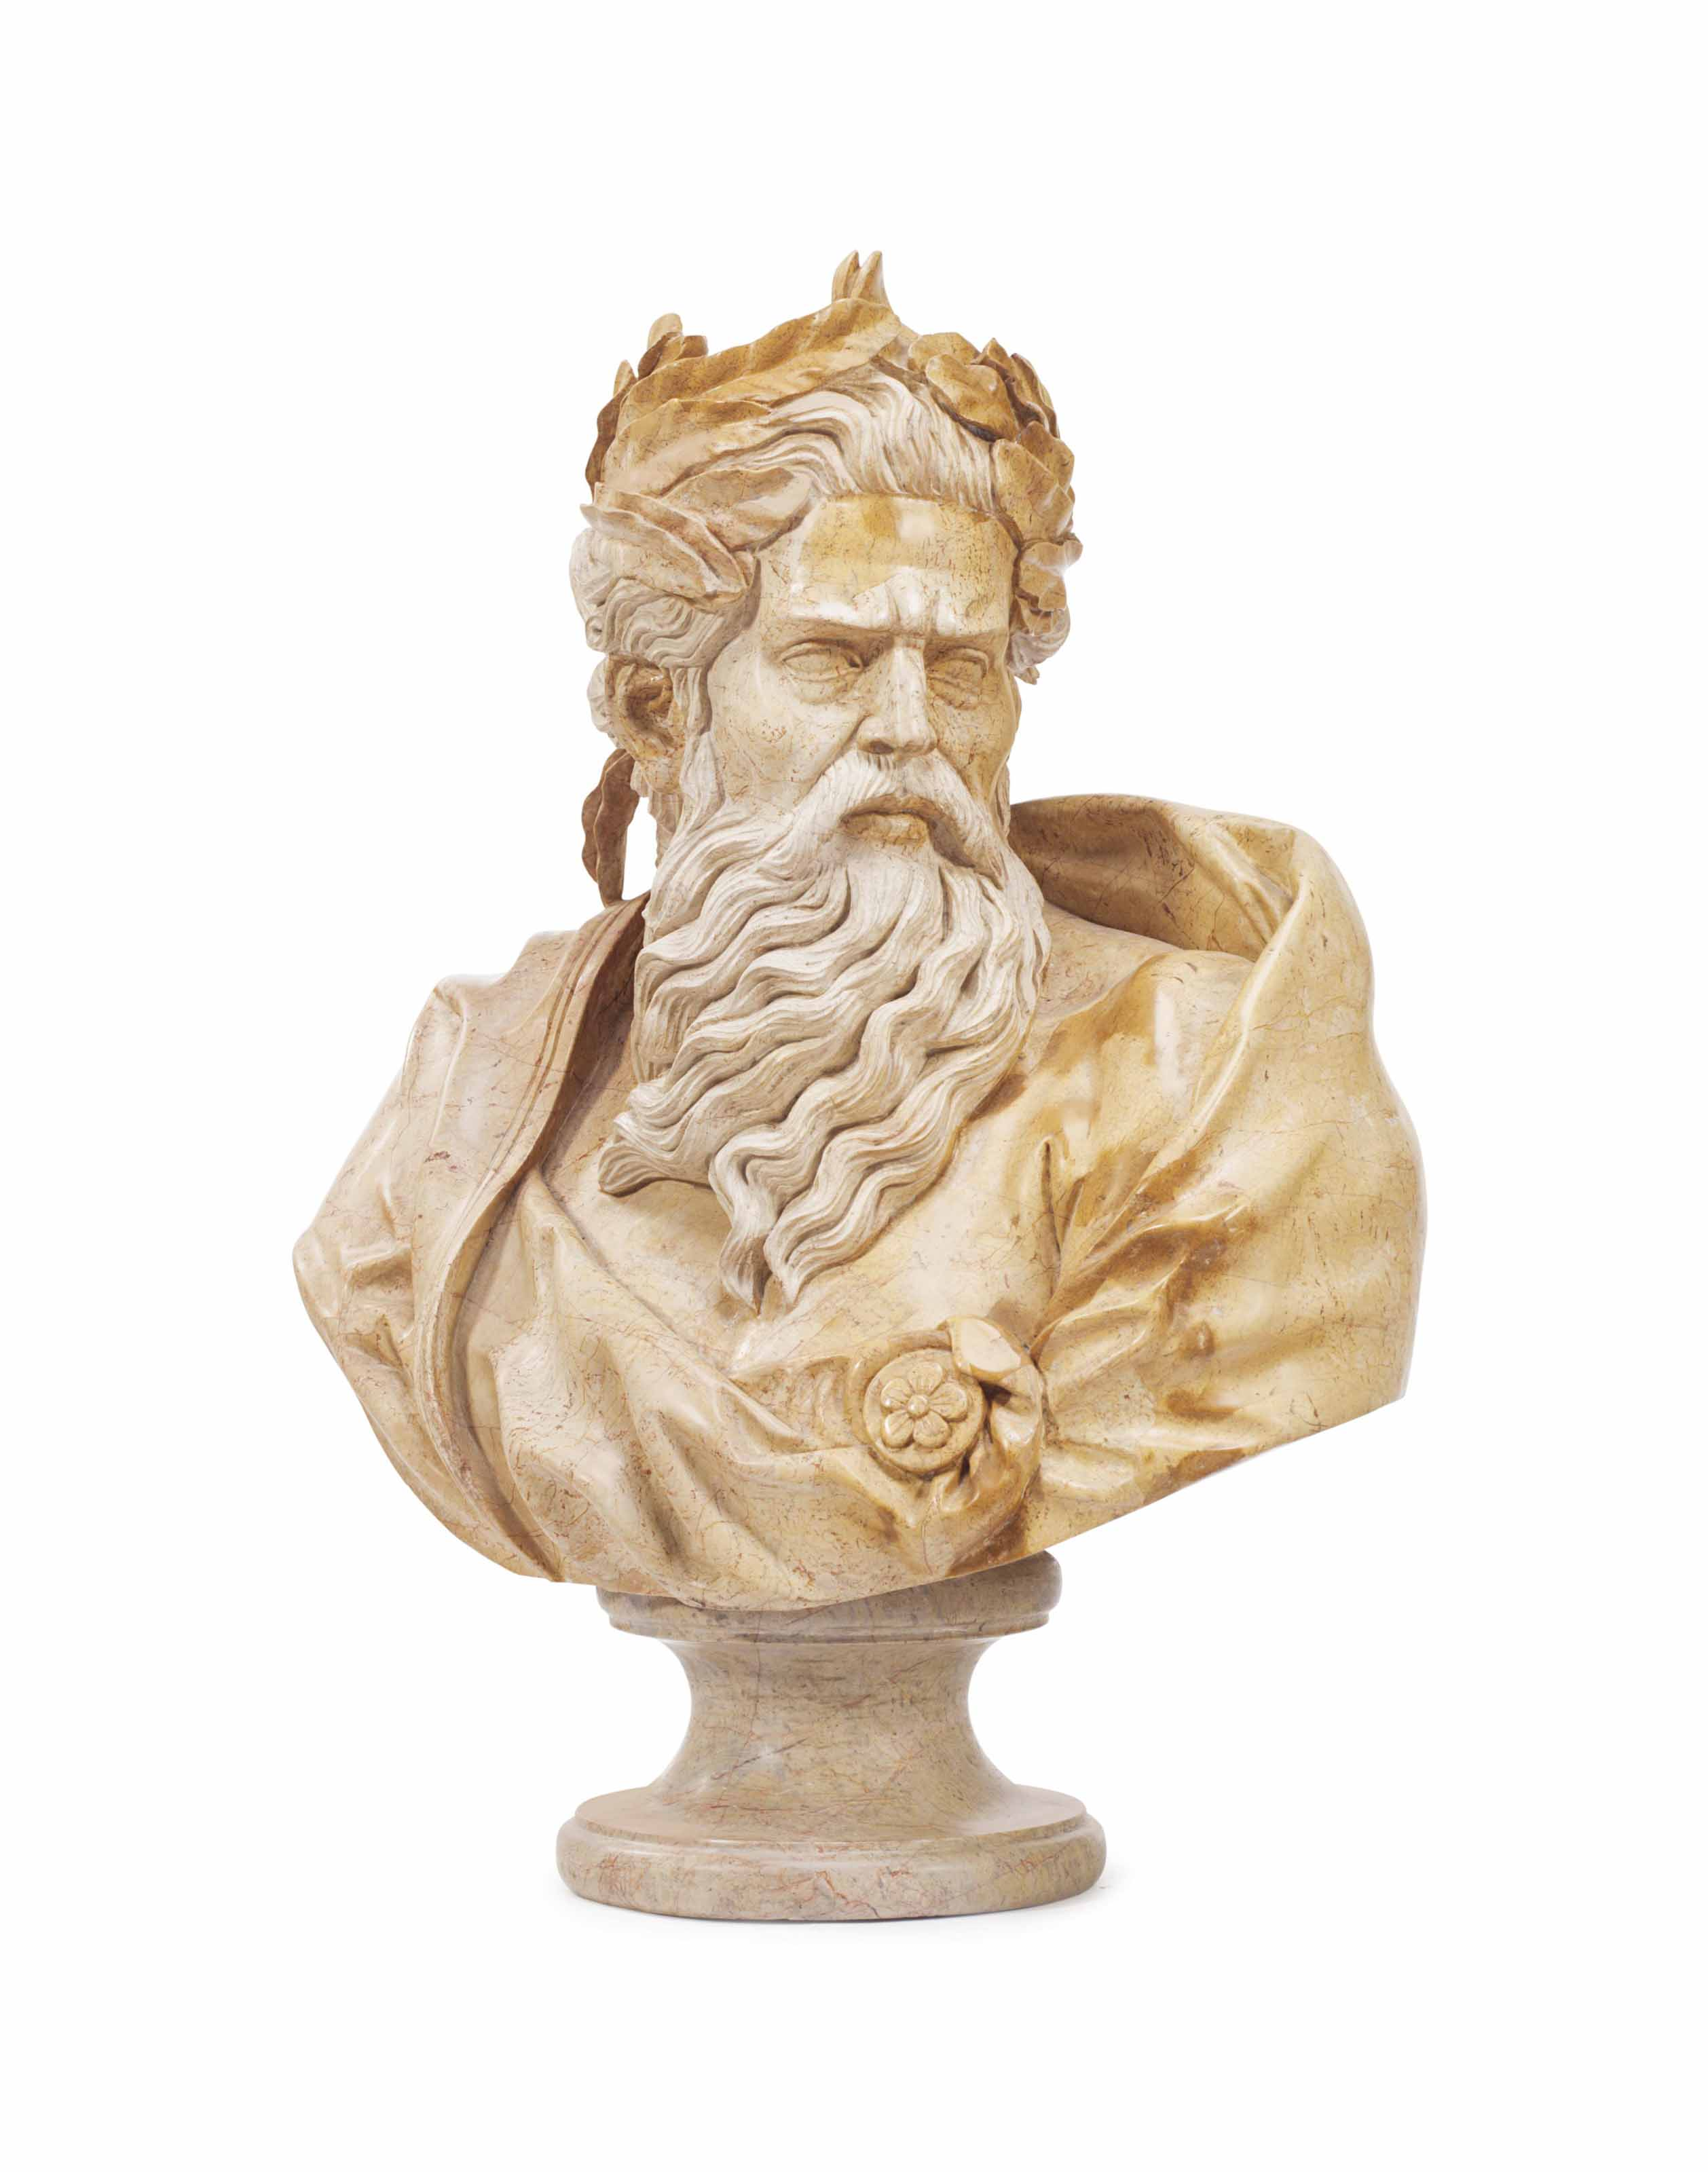 A CARVED STONE BUST OF MOSES